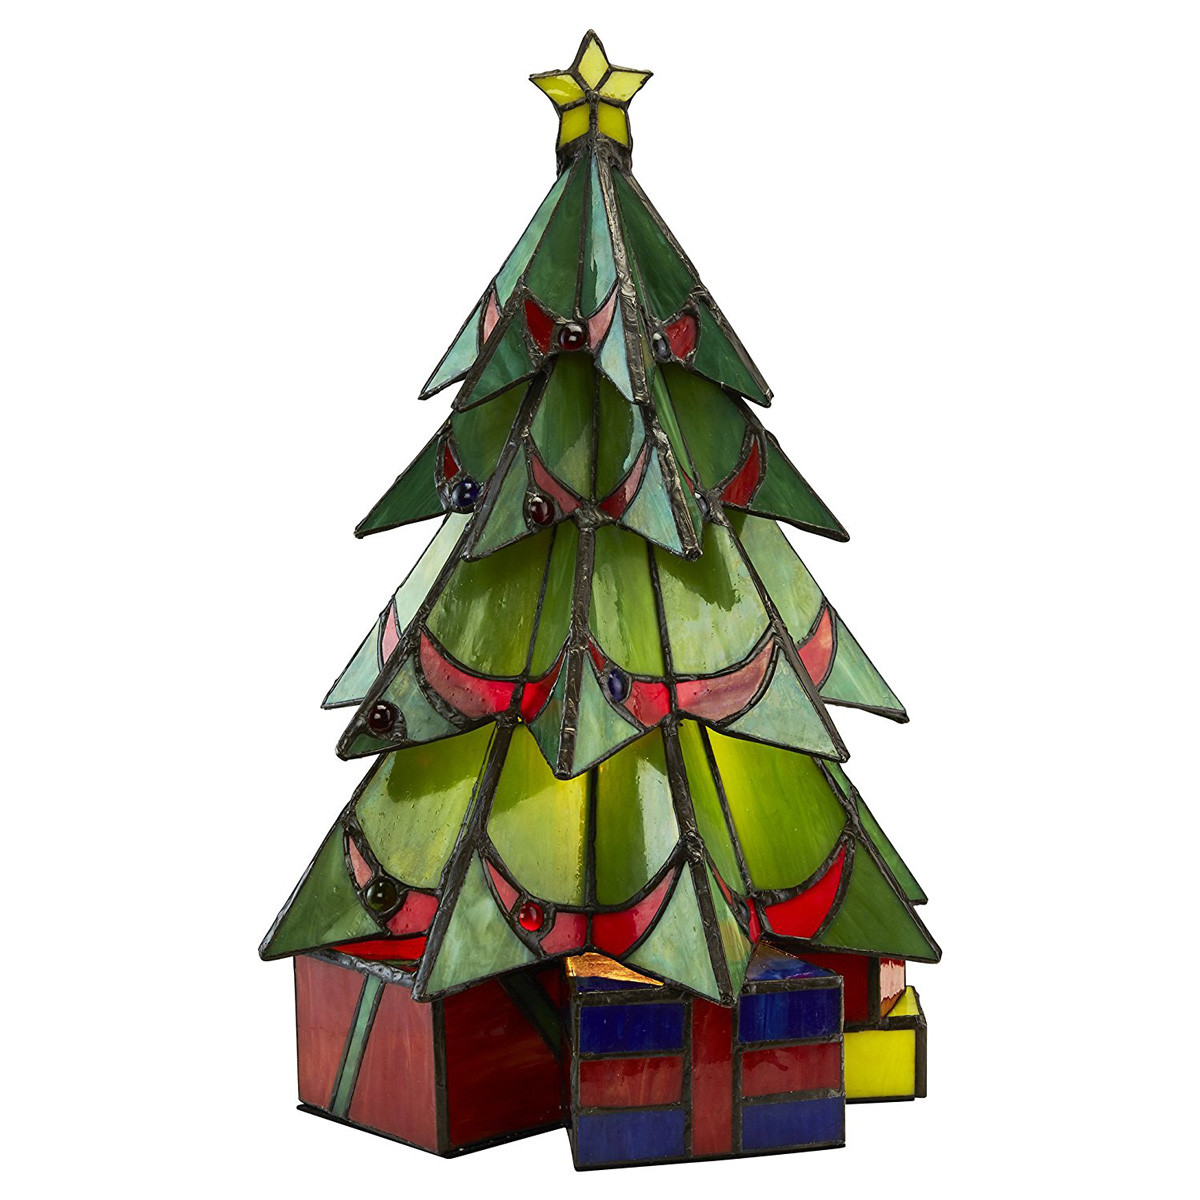 Stained Glass Christmas Tree Lamp  Illuminated Stained Glass Christmas Tree Sculpture So